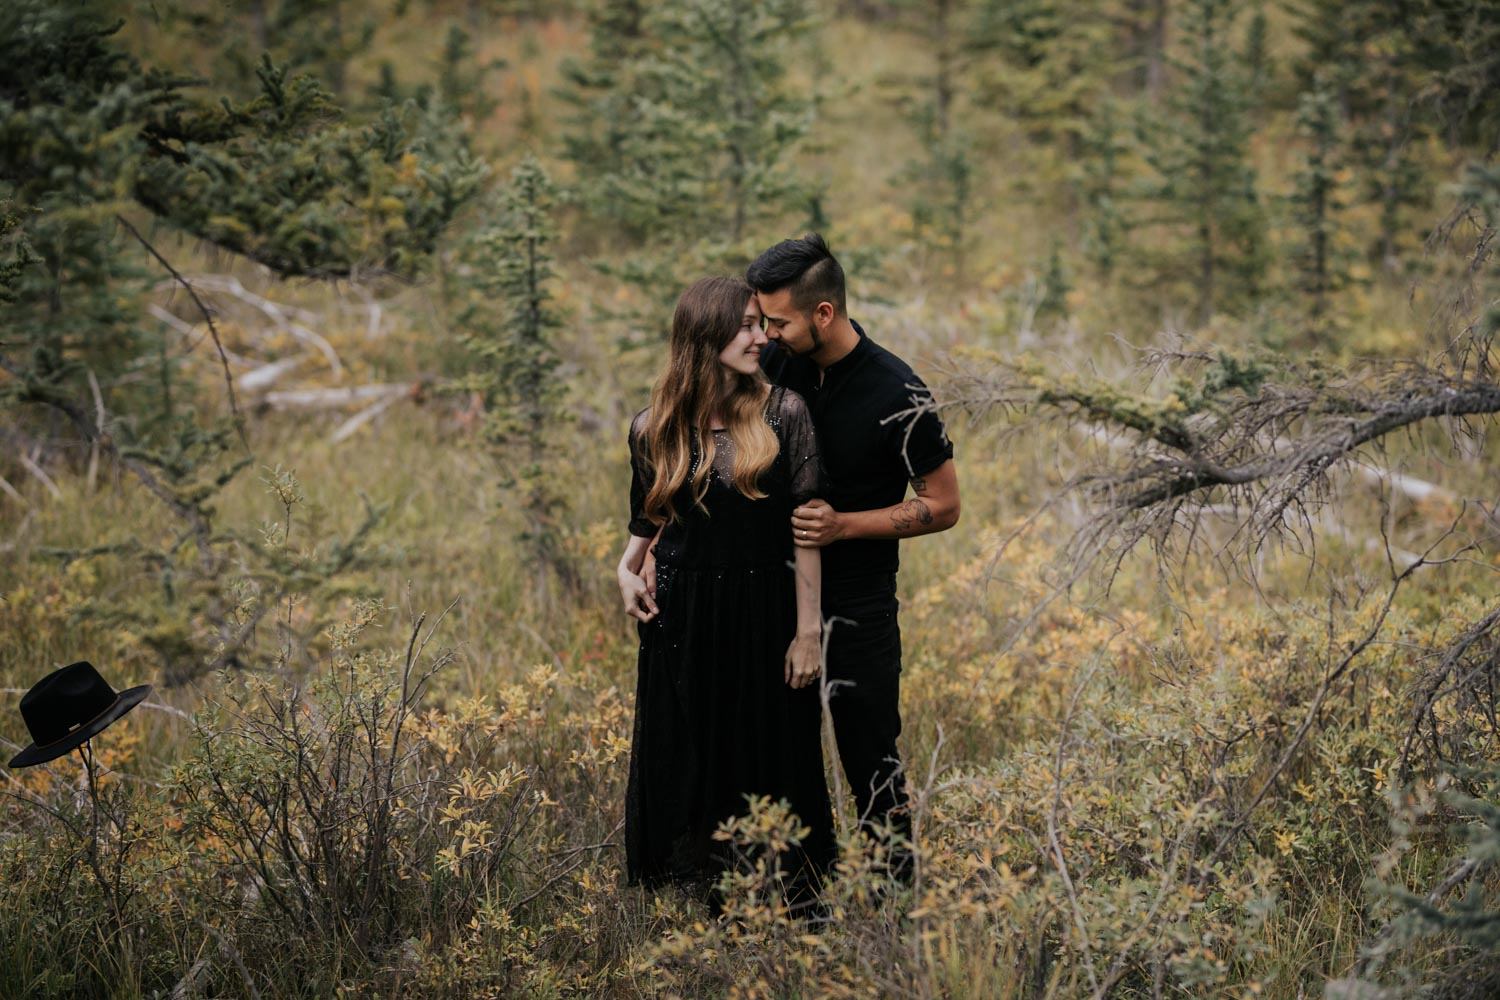 Incredible Photo Engaged Hipster Alternative Couple Standing in PNW Forest Looking Into Each other's Eyes